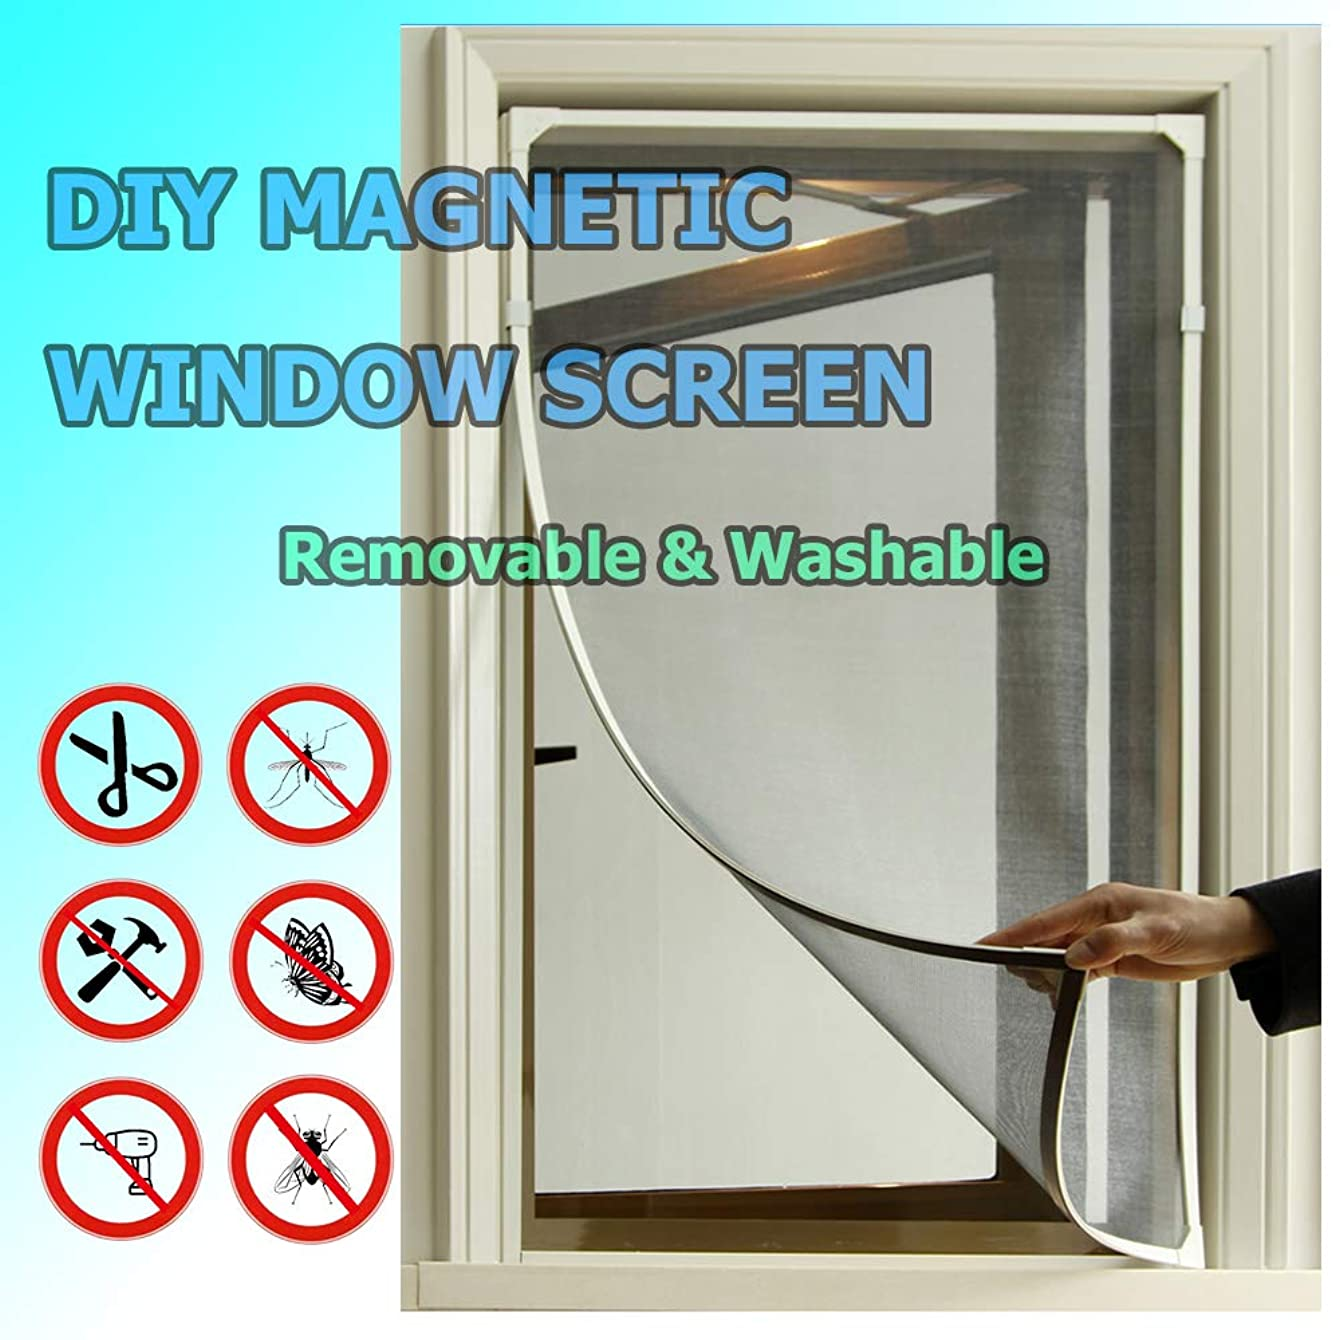 Adjustable DIY Magnetic Window Screen fit windows Up to 48x40 Inch Removable&Washable ncfmqkvwudcrk61